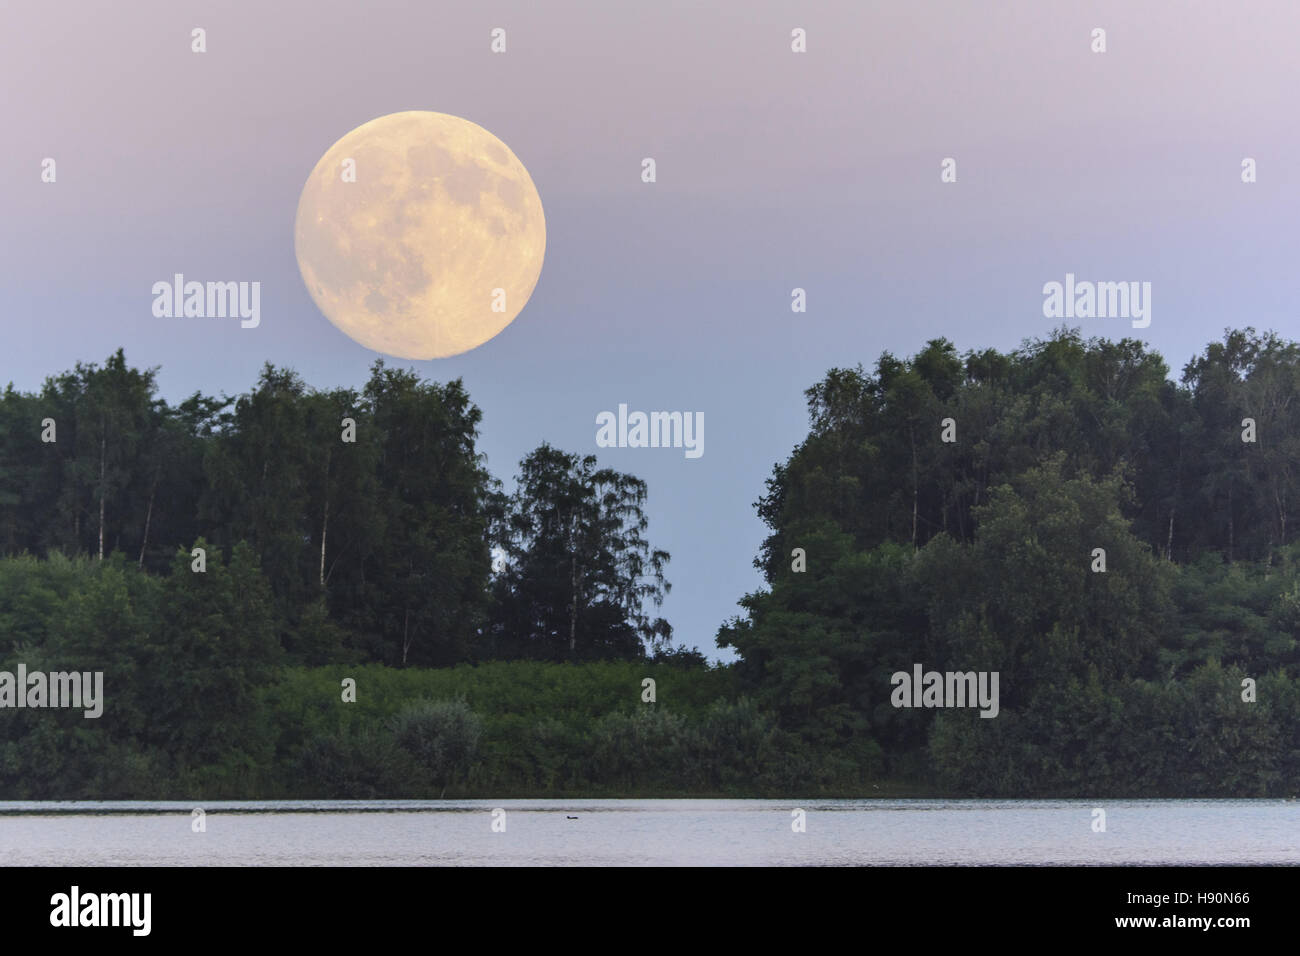 full moon over the dammer bergsee near damme (dümmer), vechta district, lower saxony, germany - Stock Image